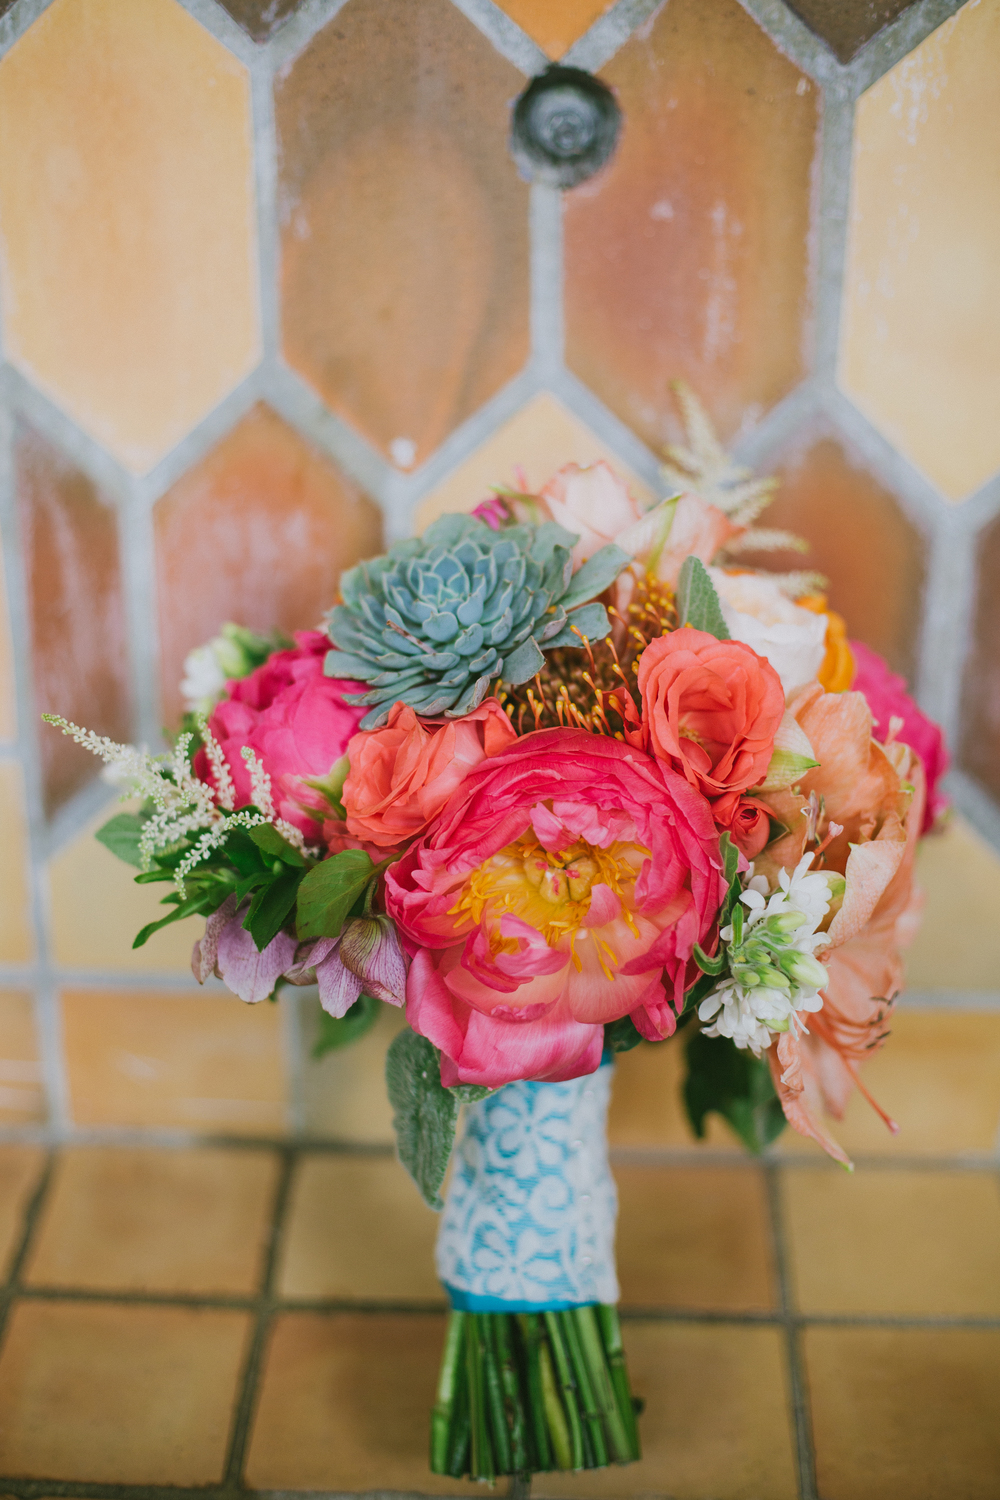 Florals by 2Birds, via Oh Hello Events